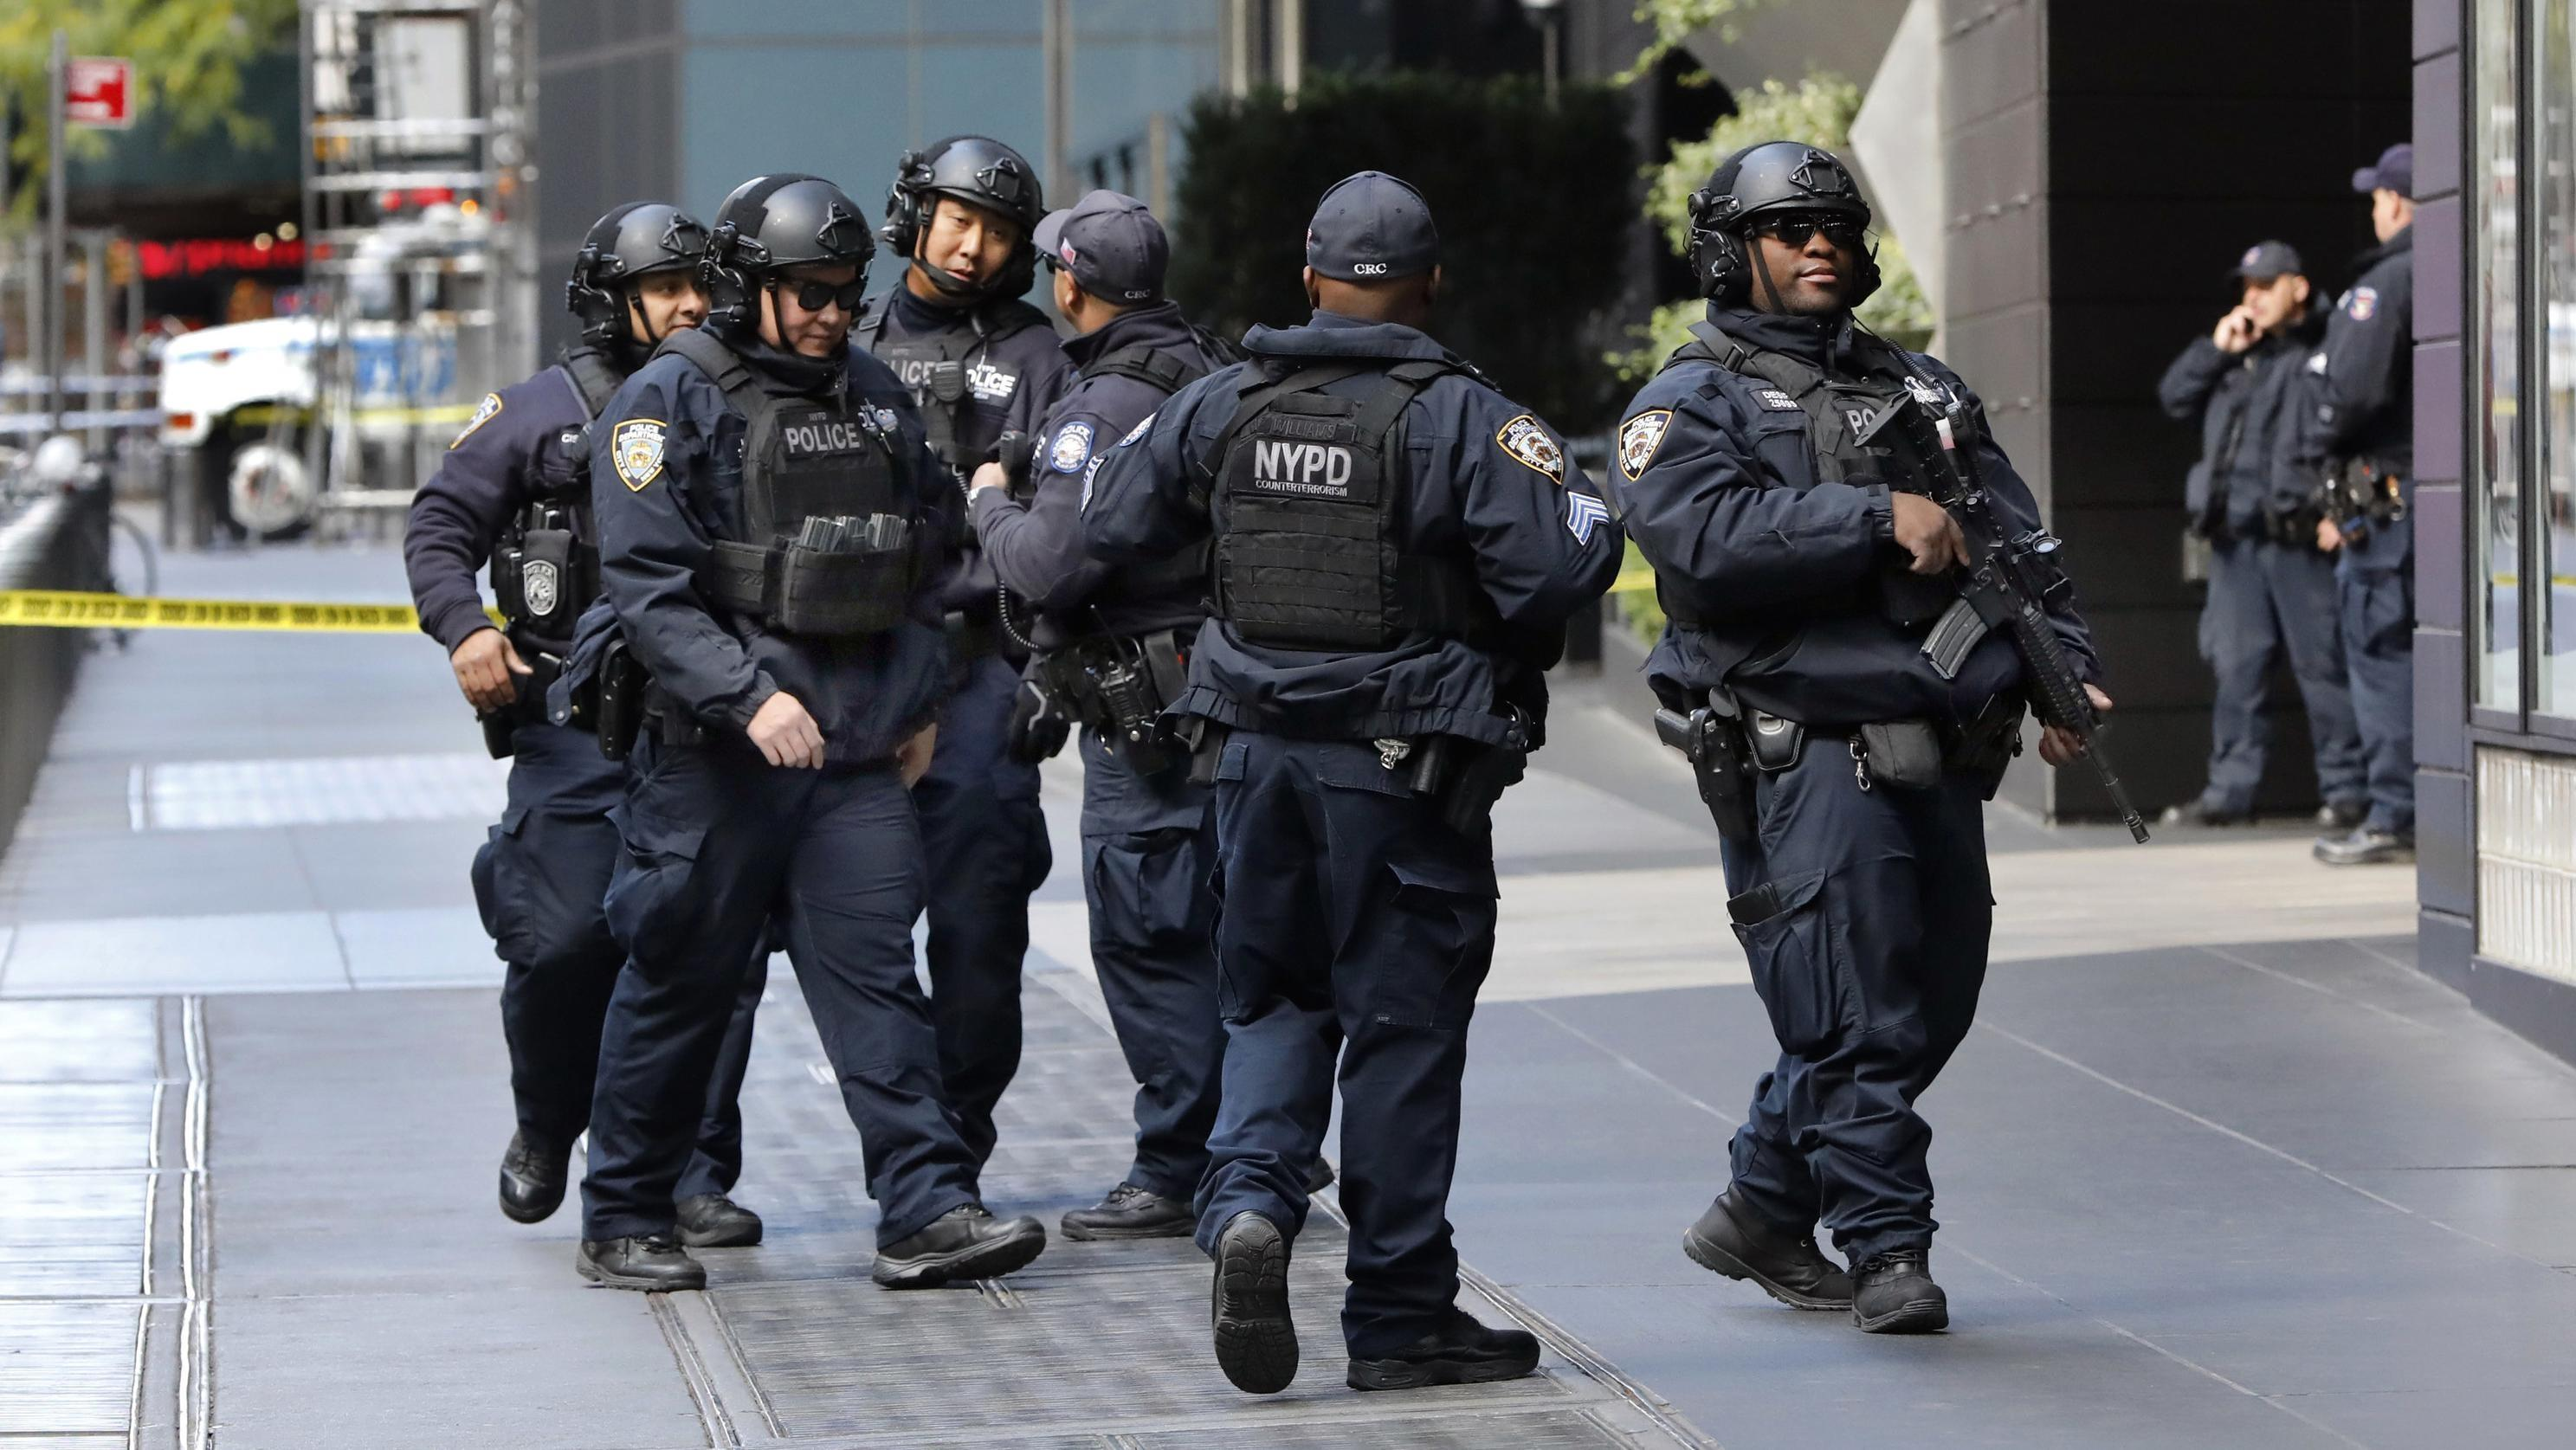 Polizisten in New York.